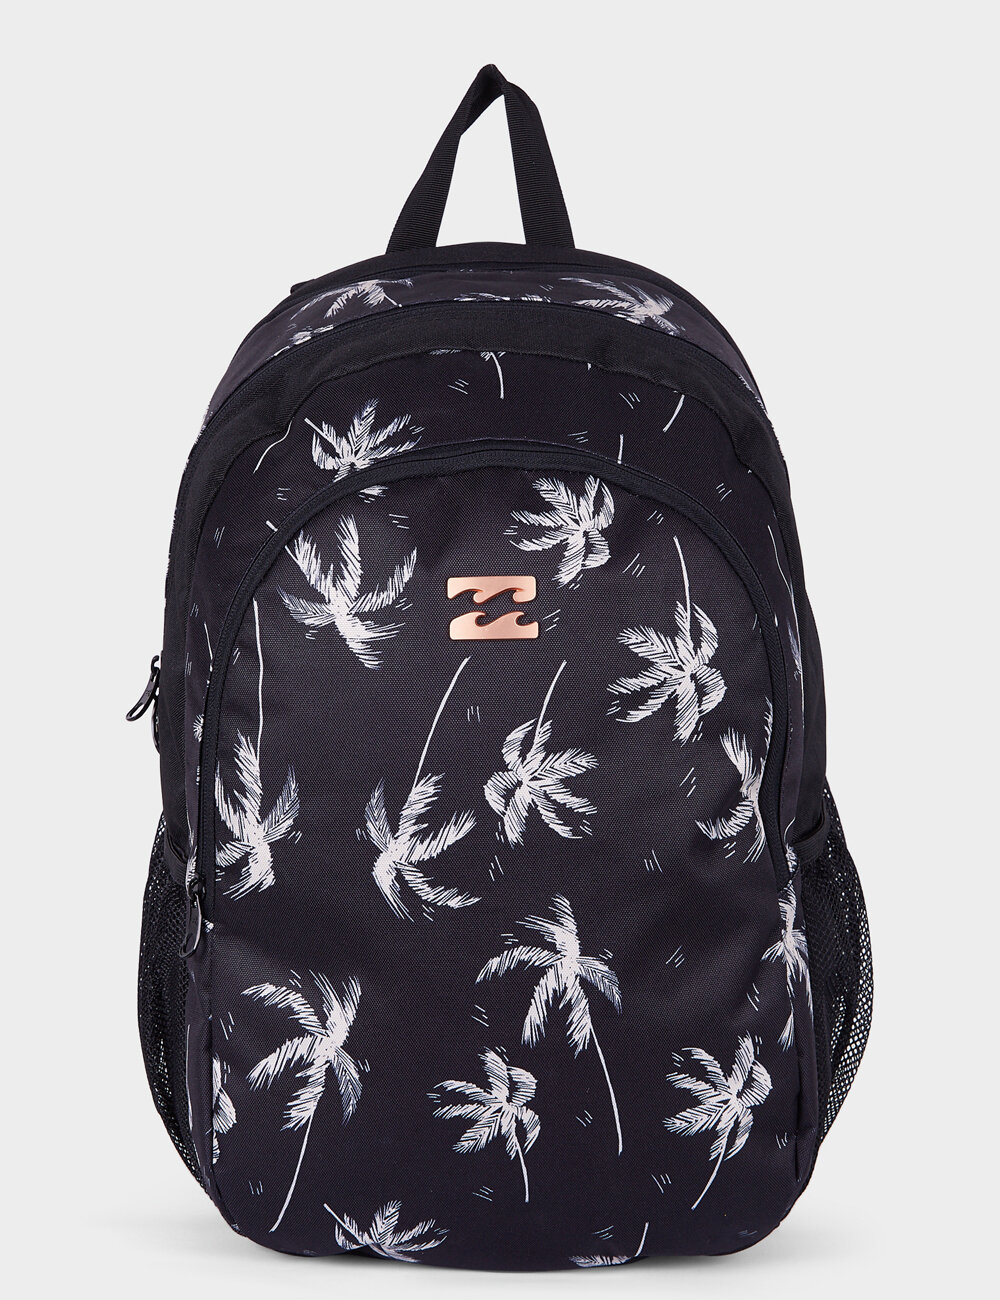 My Friends Told Me About You Guide streetwear backpack